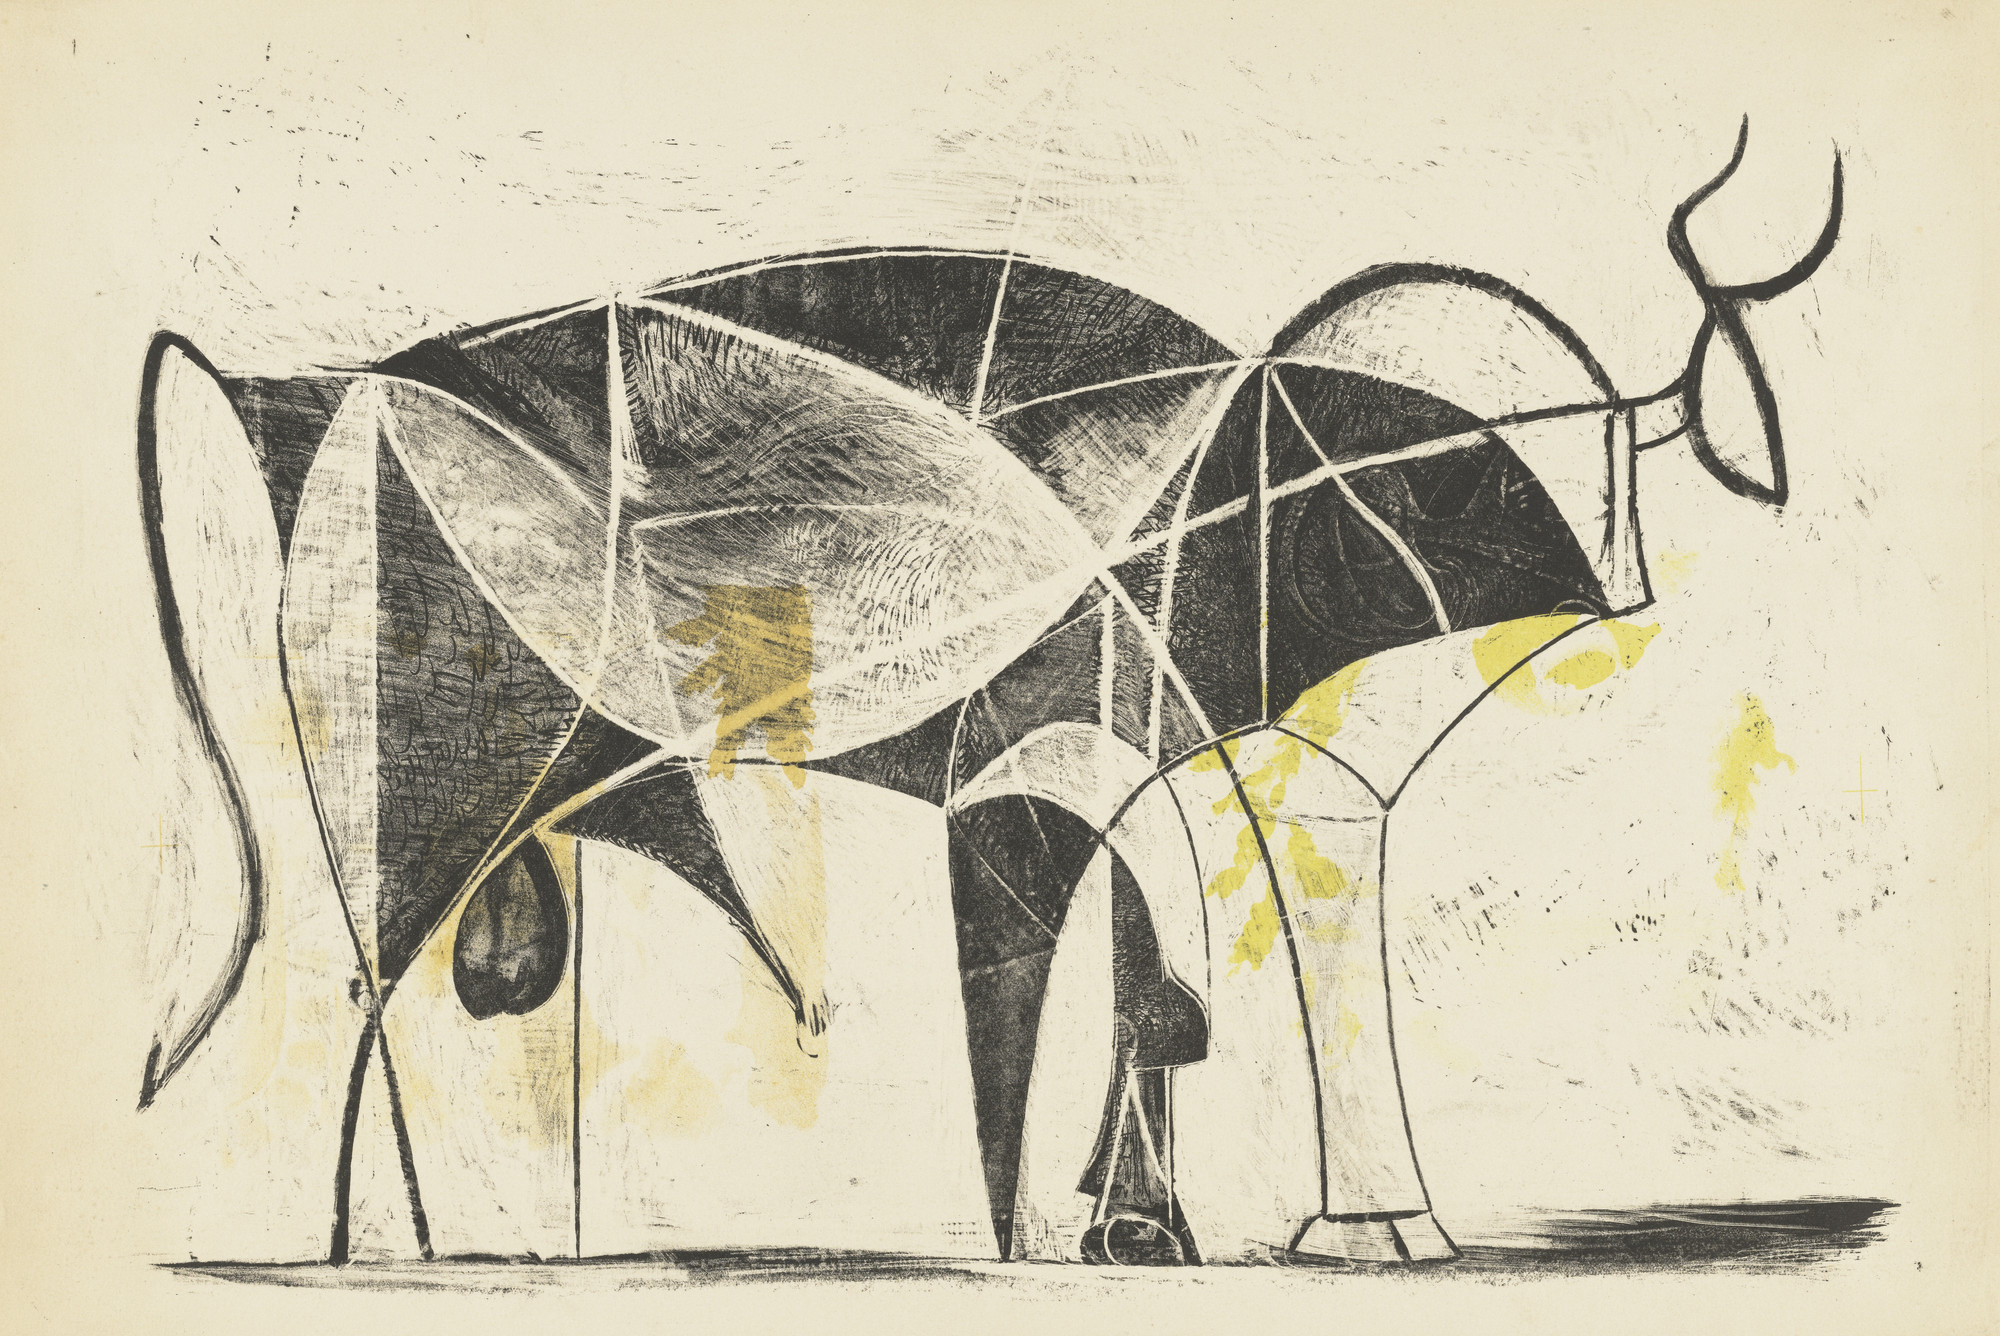 Pablo Picasso. The Bull (Le Taureau), state VII. December 26, 1945. Lithograph, composition: 12 3/16 × 18 7/16″ (31 × 46.8 cm); sheet: 13 1/16 × 19 7/16″ (33.2 × 49.3 cm). The Museum of Modern Art. Mrs. Gilbert W. Chapman Fund. © 2009 Estate of Pablo Picasso/Artists Rights Society (ARS), New York. Photo: Jonathan Muzikar